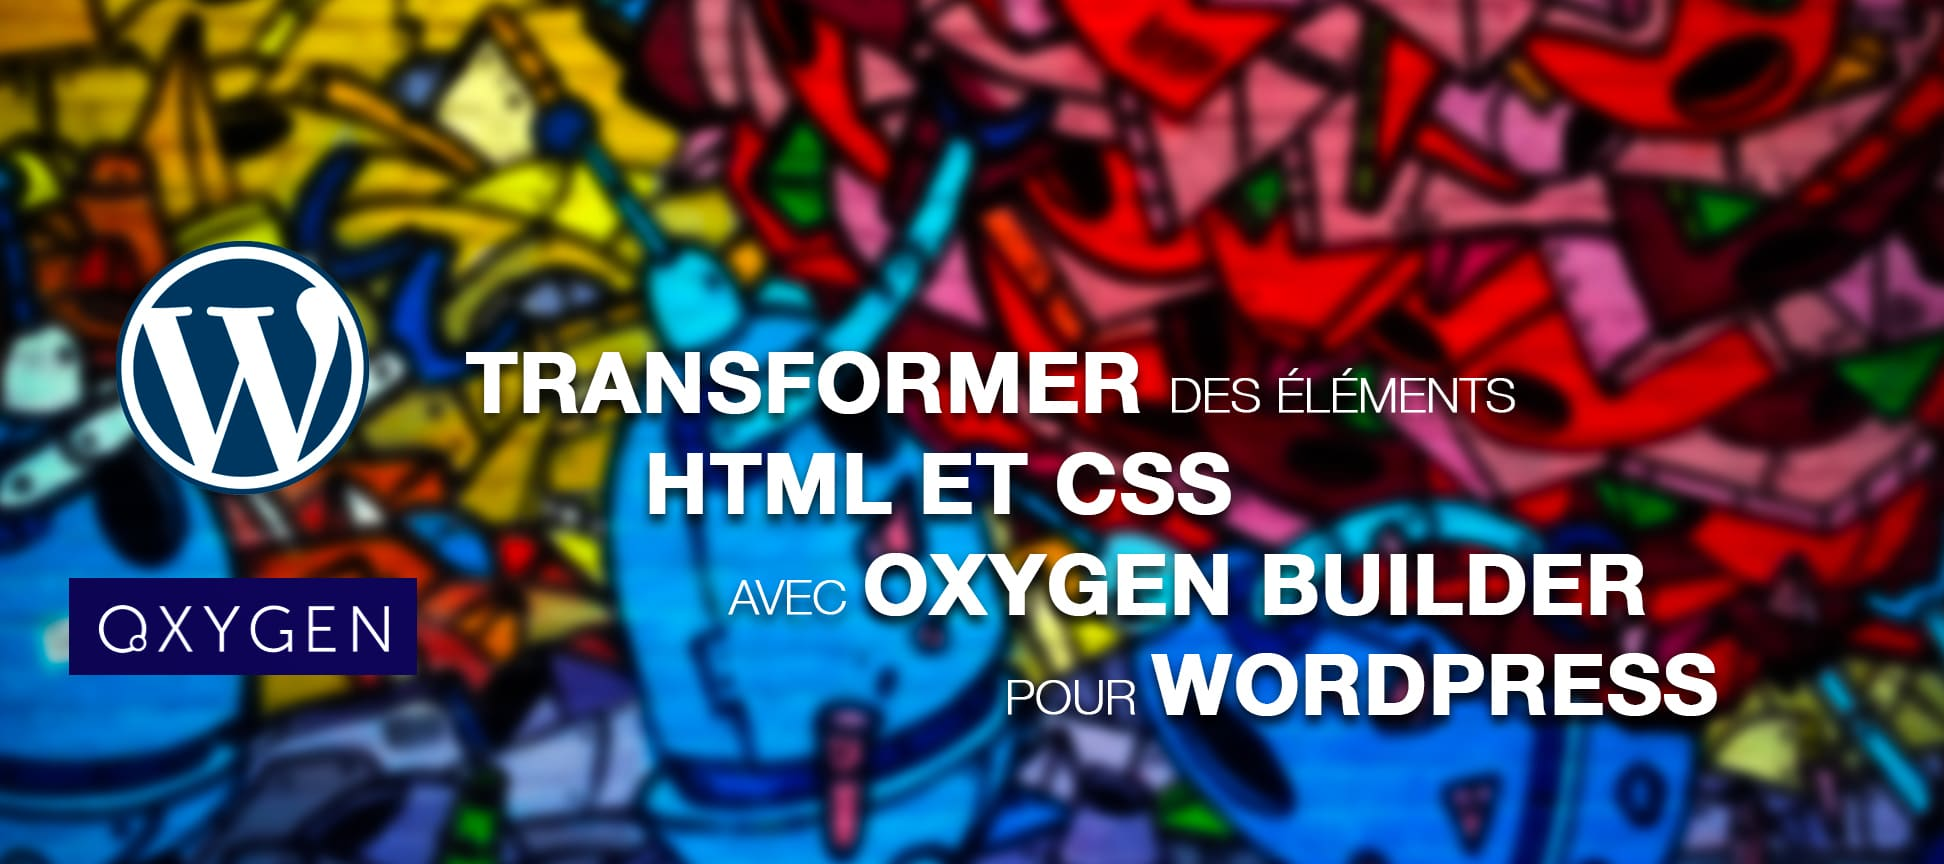 visuel formation transformer element html oxygen pour wordpress